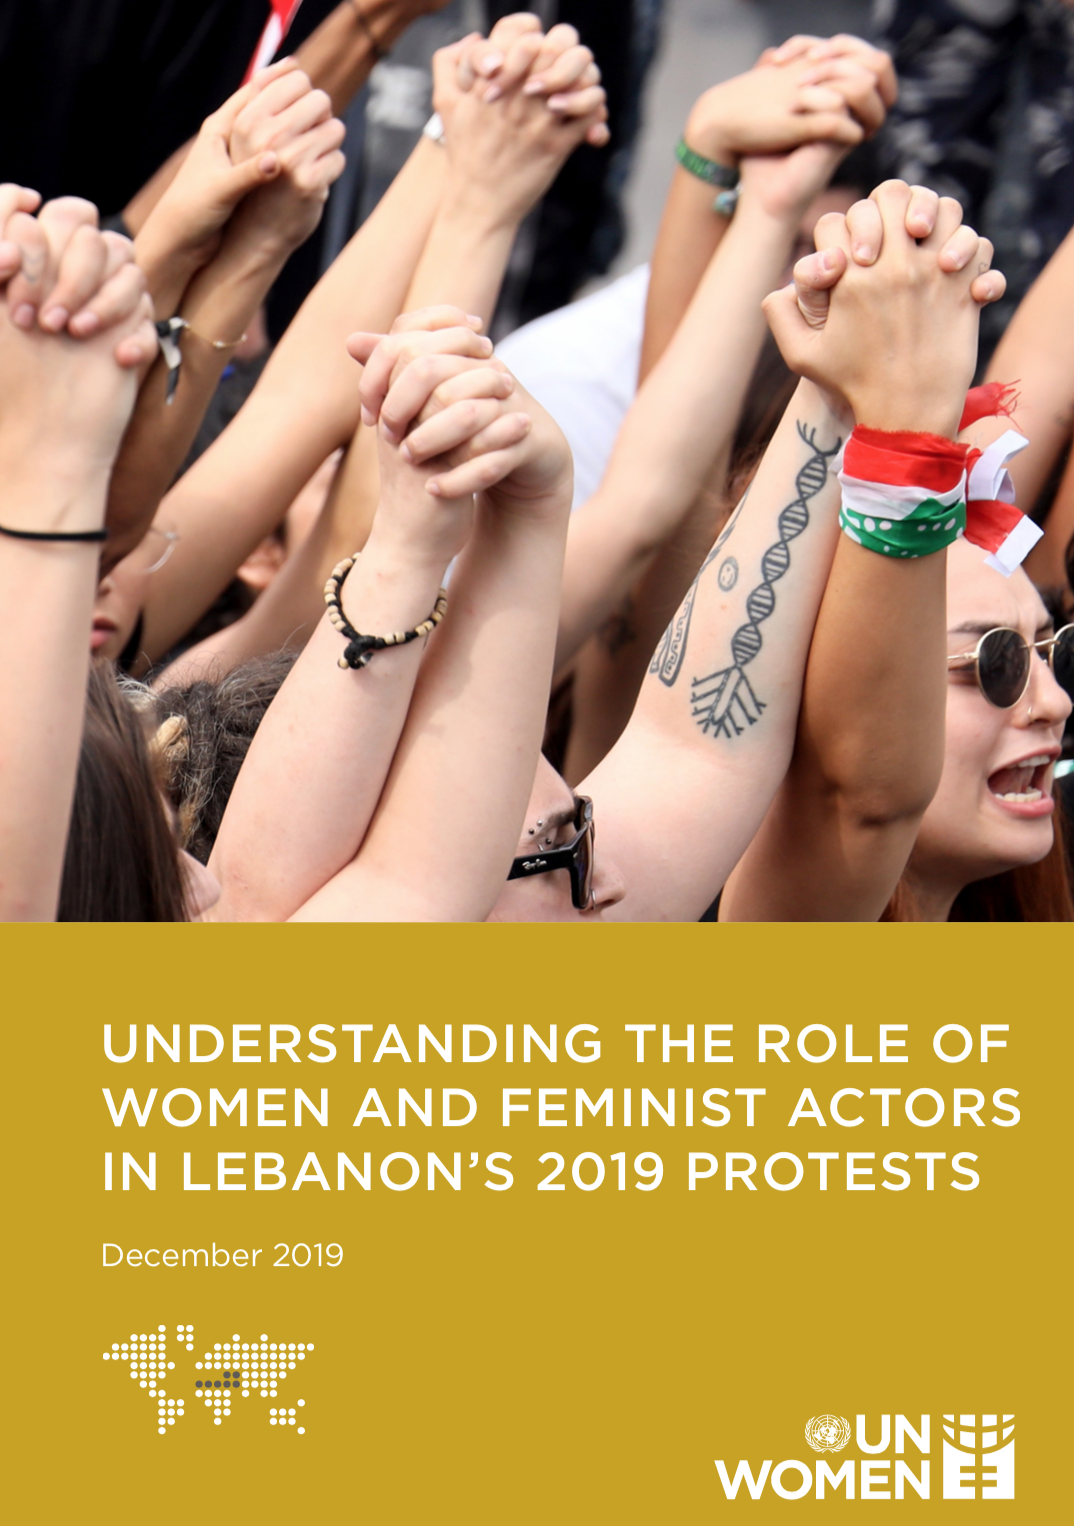 Understanding the Role of Women and Feminist Actors in Lebanon's 2019 Protests